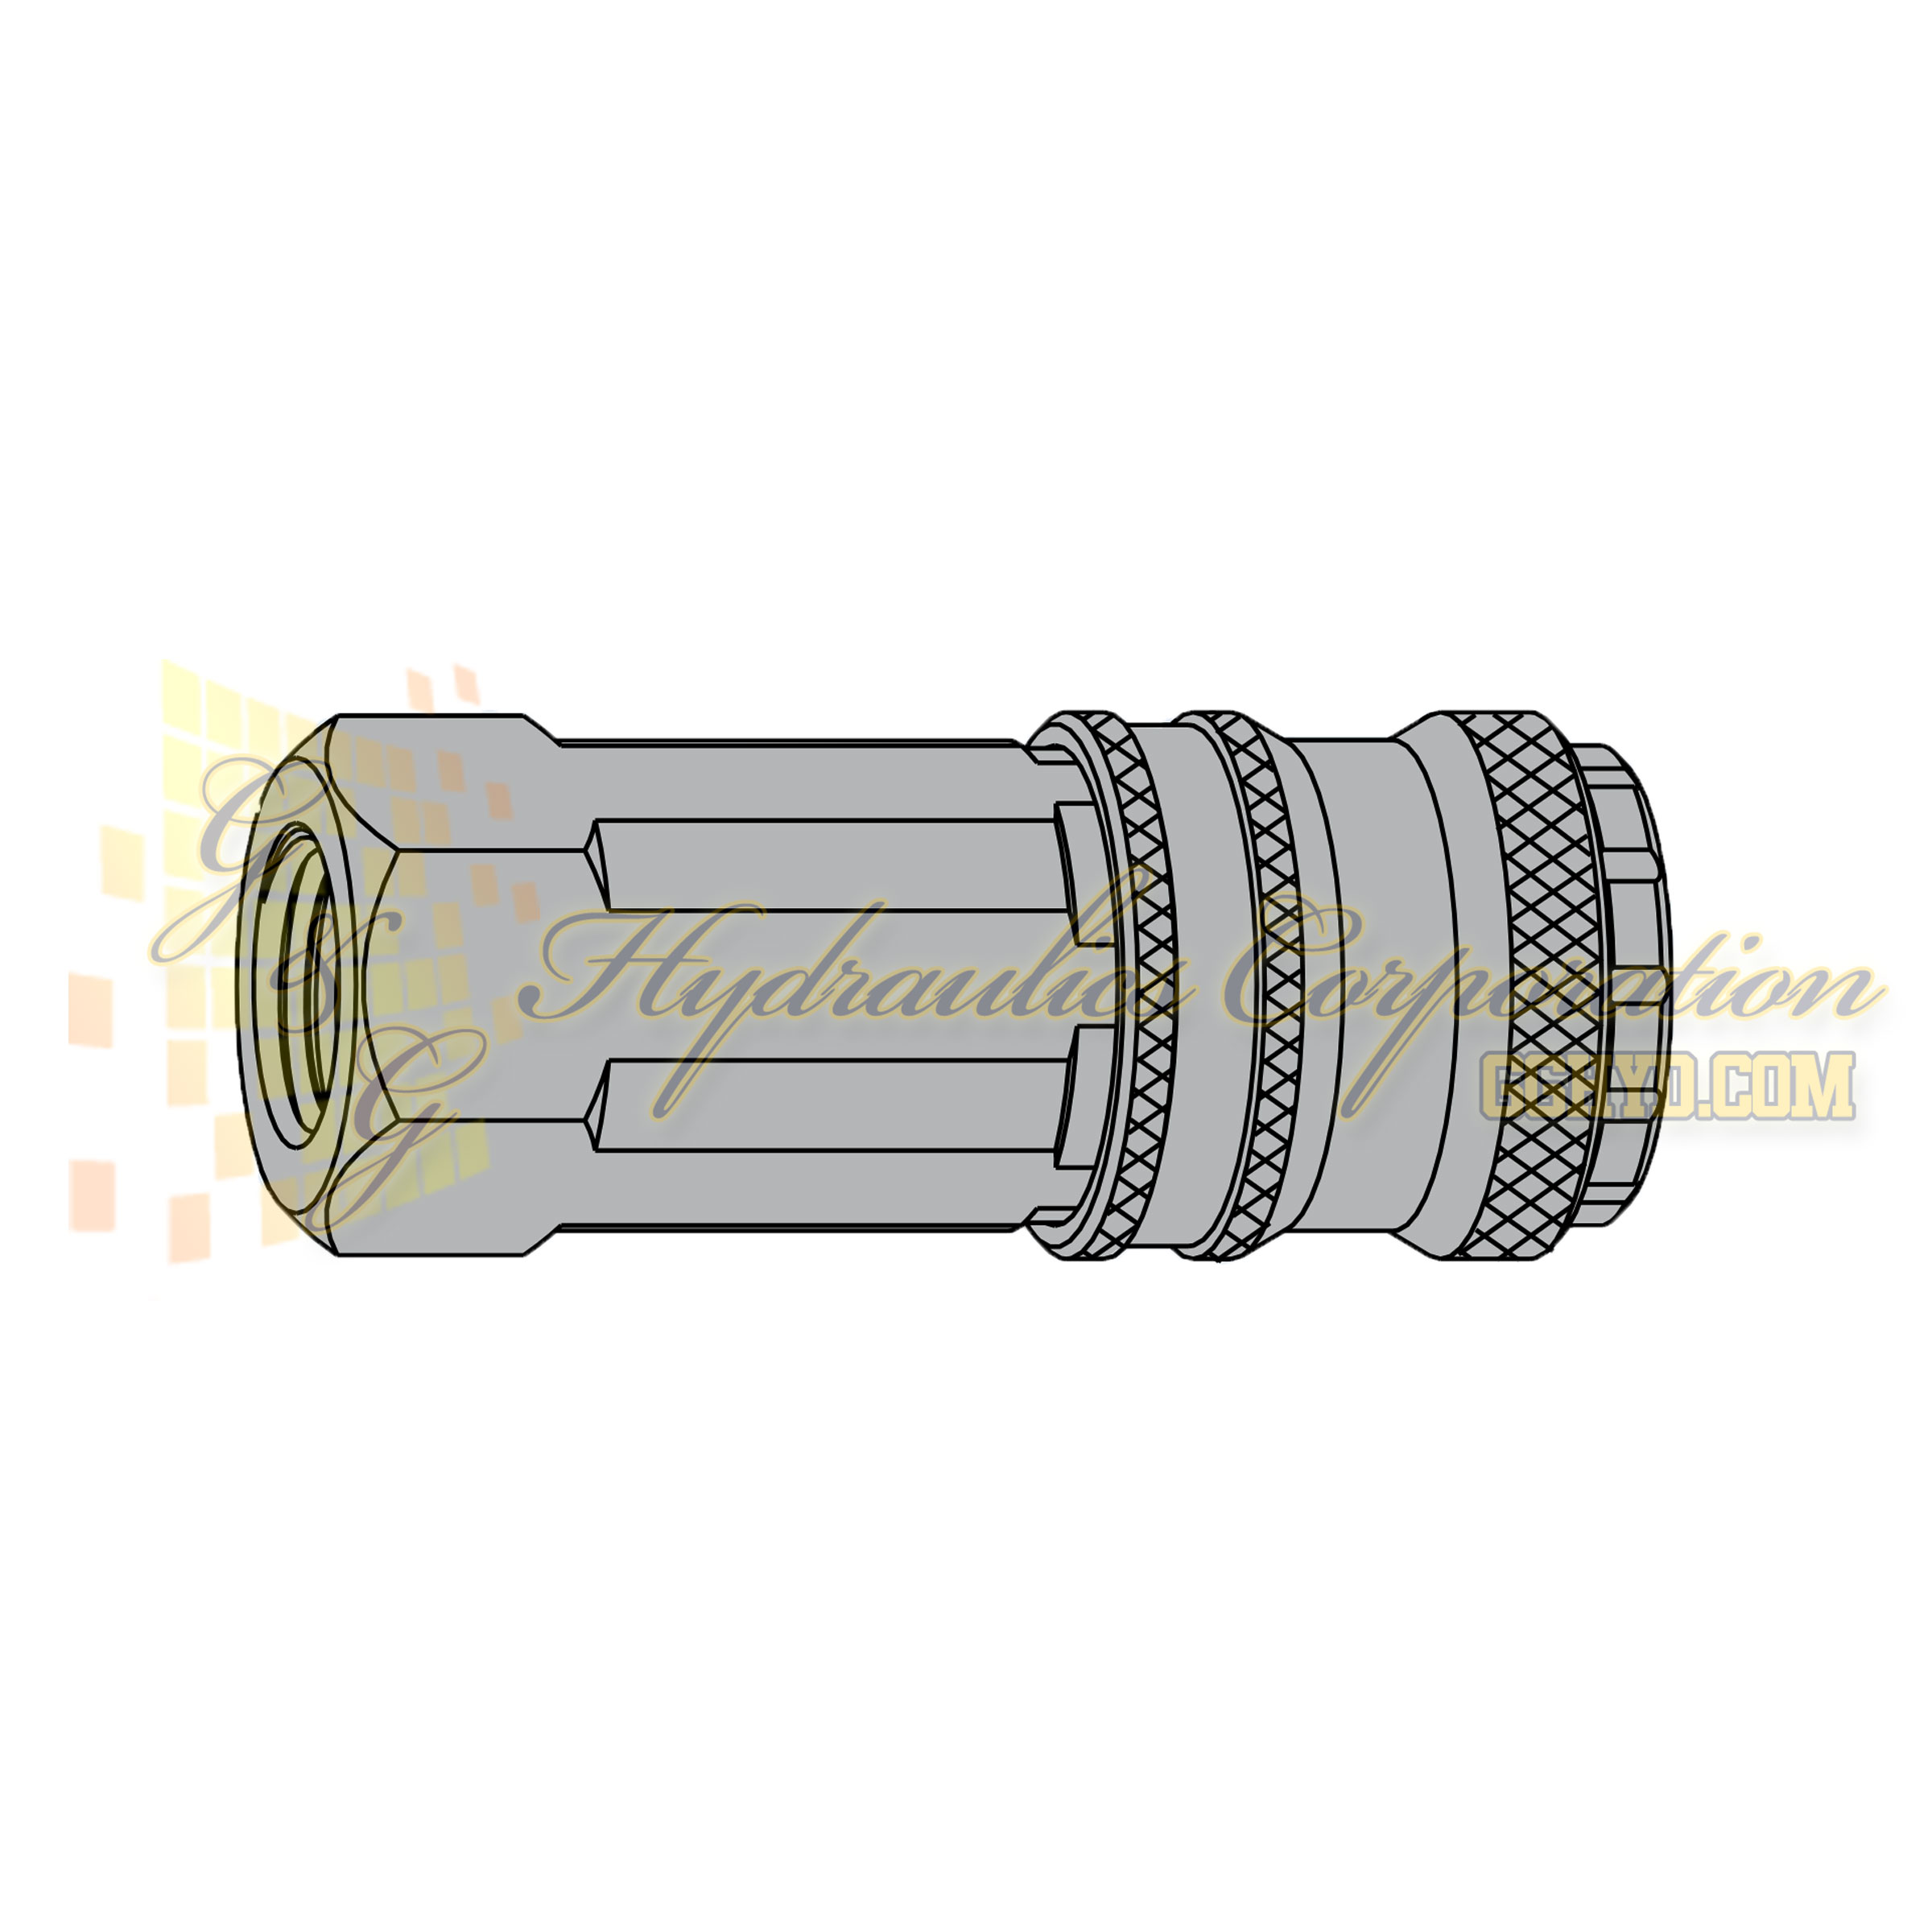 "10-320-1202 CEJN Standard and Vented Safety Coupler, 1/4"" BSPP Female Threads"